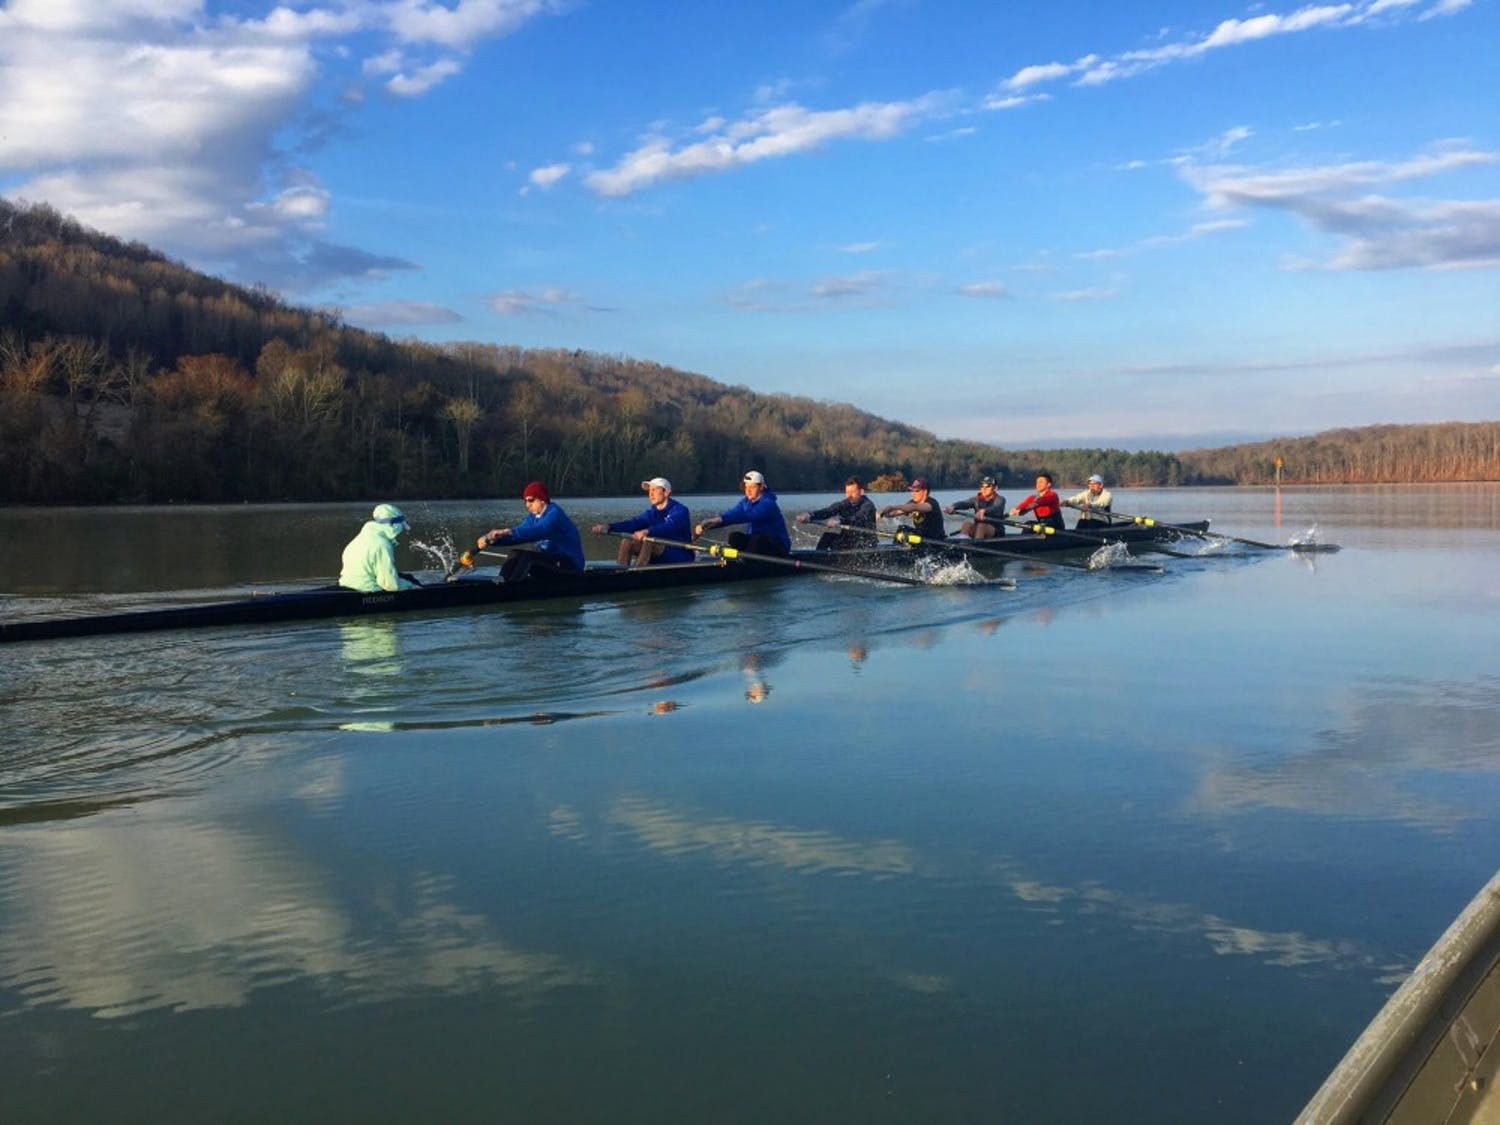 UB rowing club practices early on the water. The rowing club is coming off a successful end to its season.